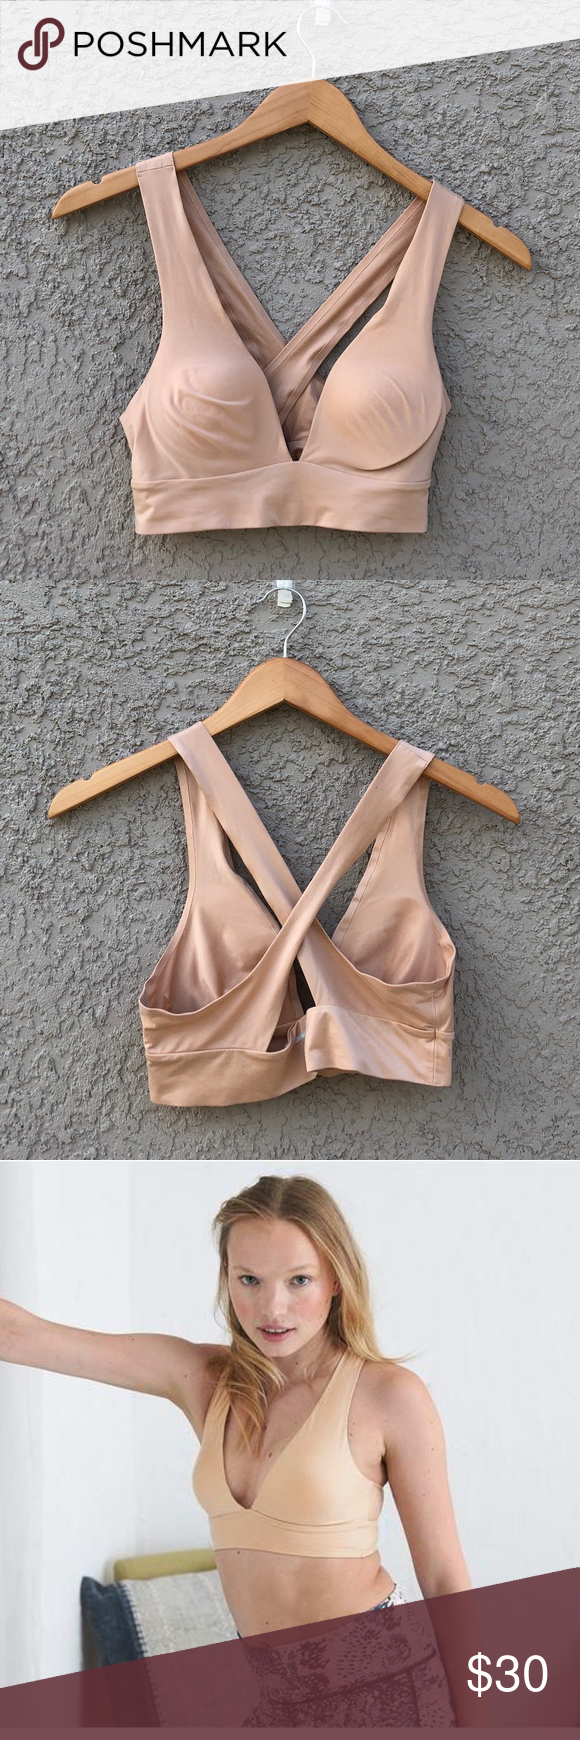 7a38881a77c AERIE Sunnie Chill Bralette in Nude AERIE by American Eagle Sunnie Chill  Bralette in the color